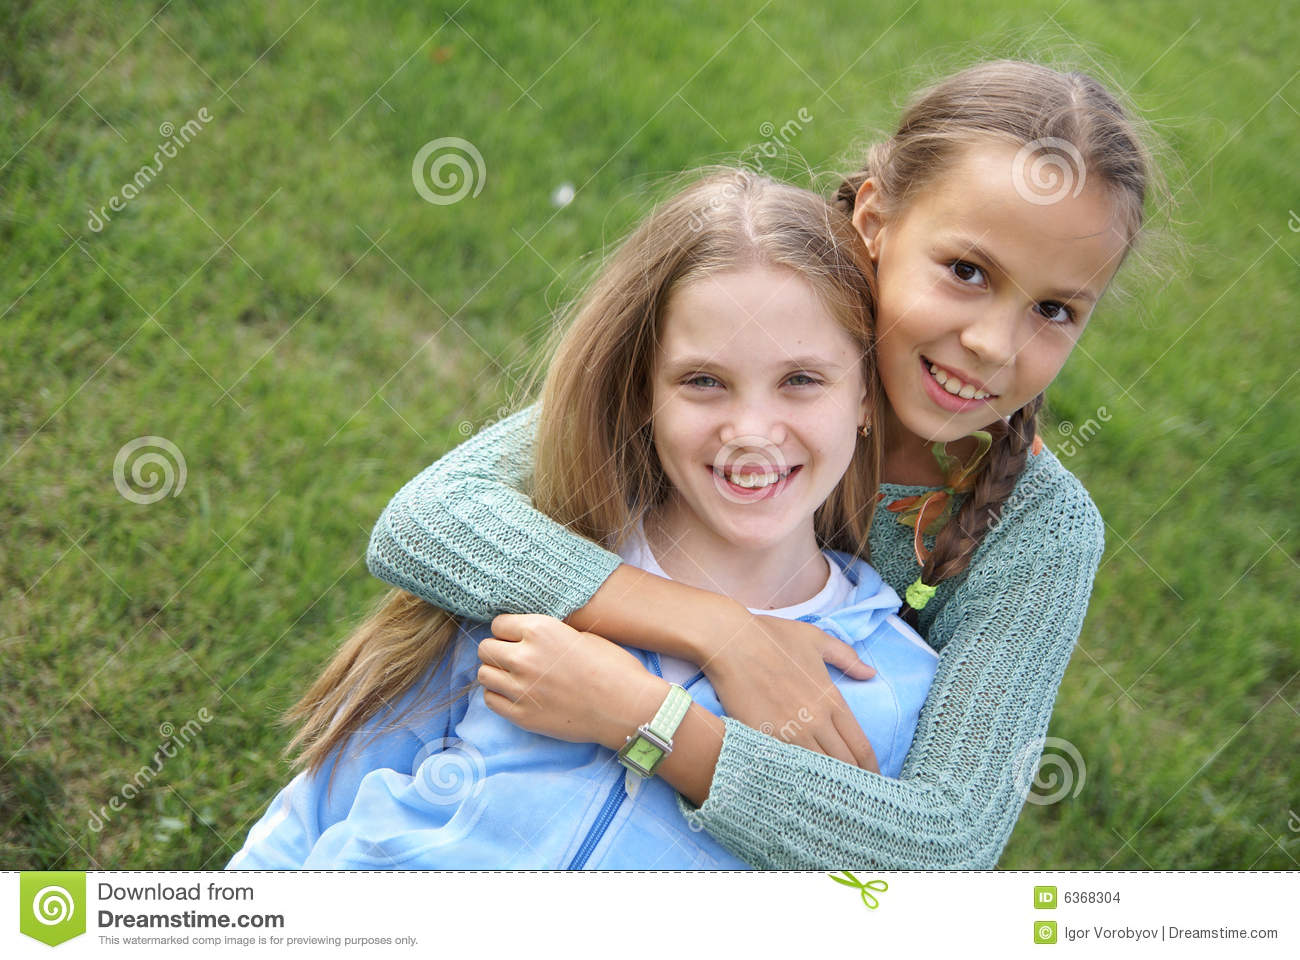 House Design Studio Bozeman Preteen Vids Smiling Preteen Girls Stock Images Image 6368304